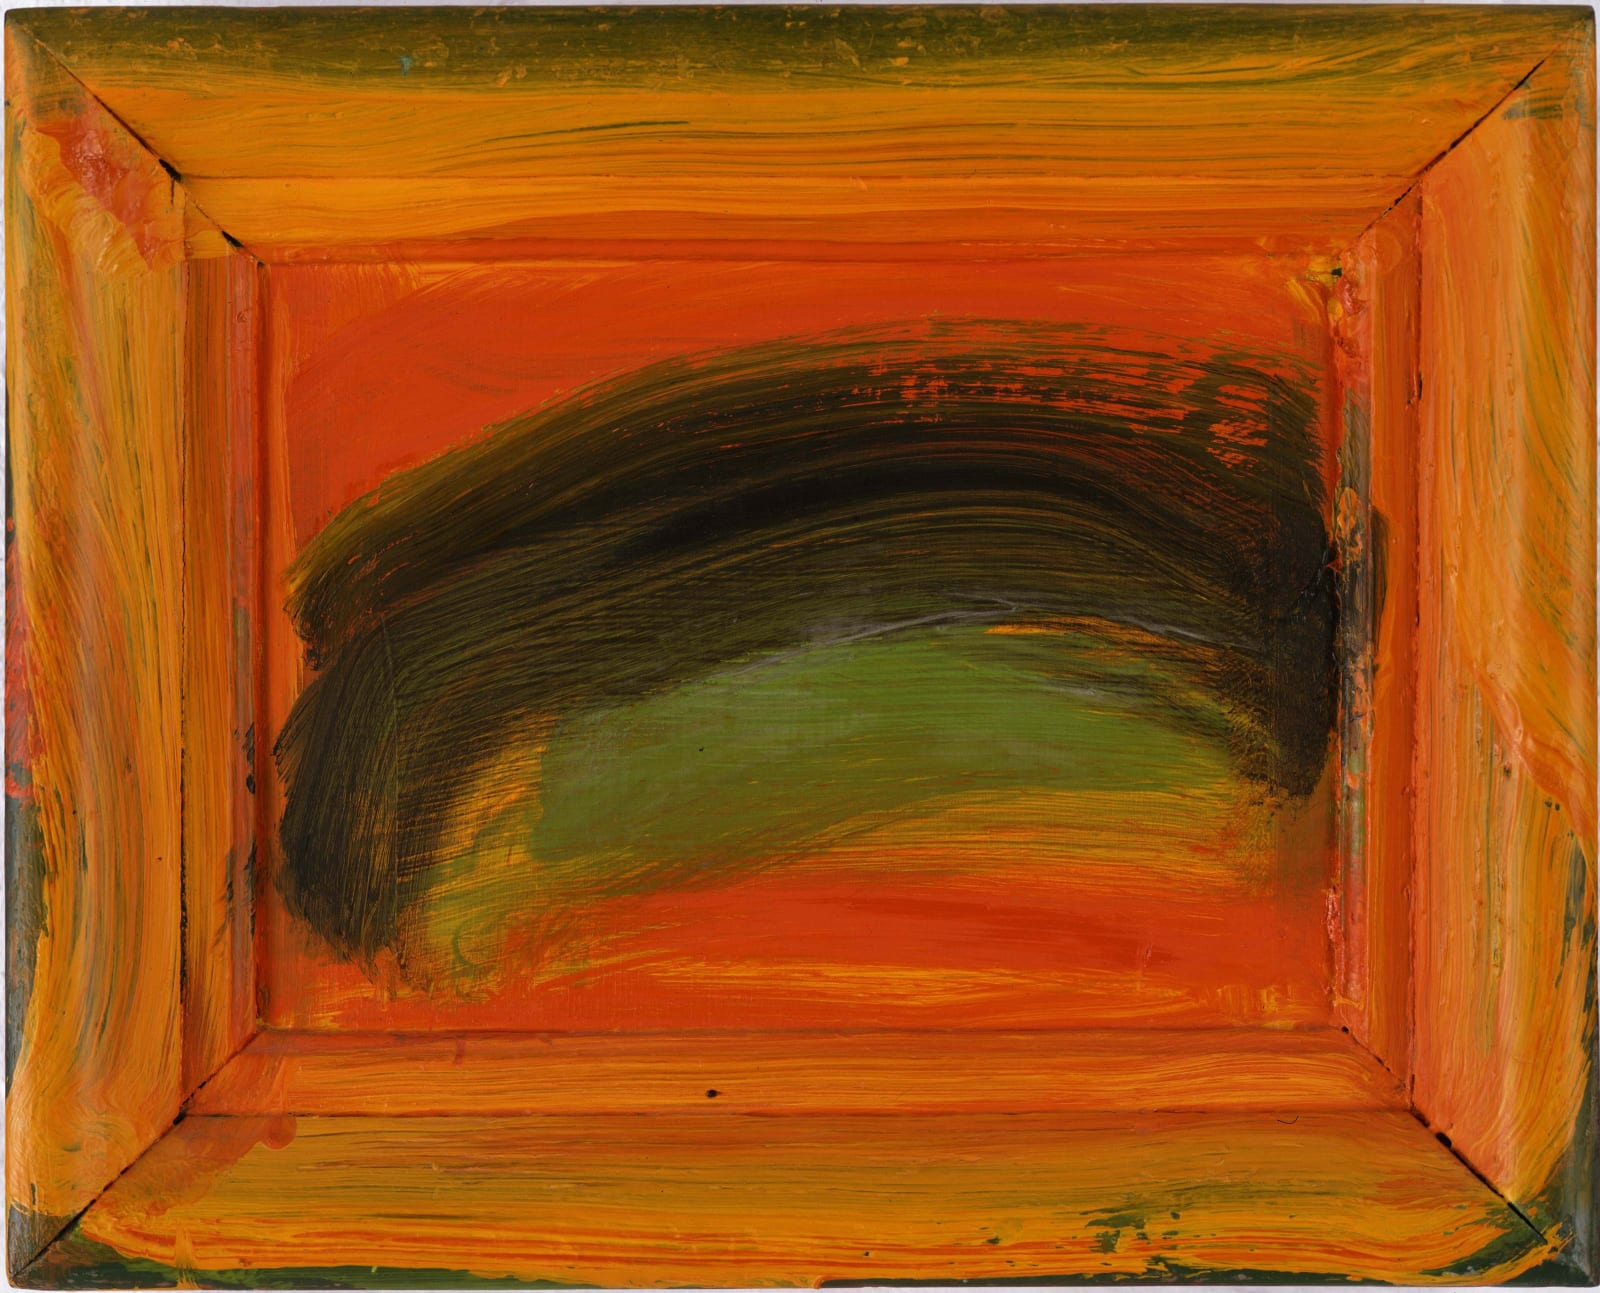 Small Indian Sky, 1990